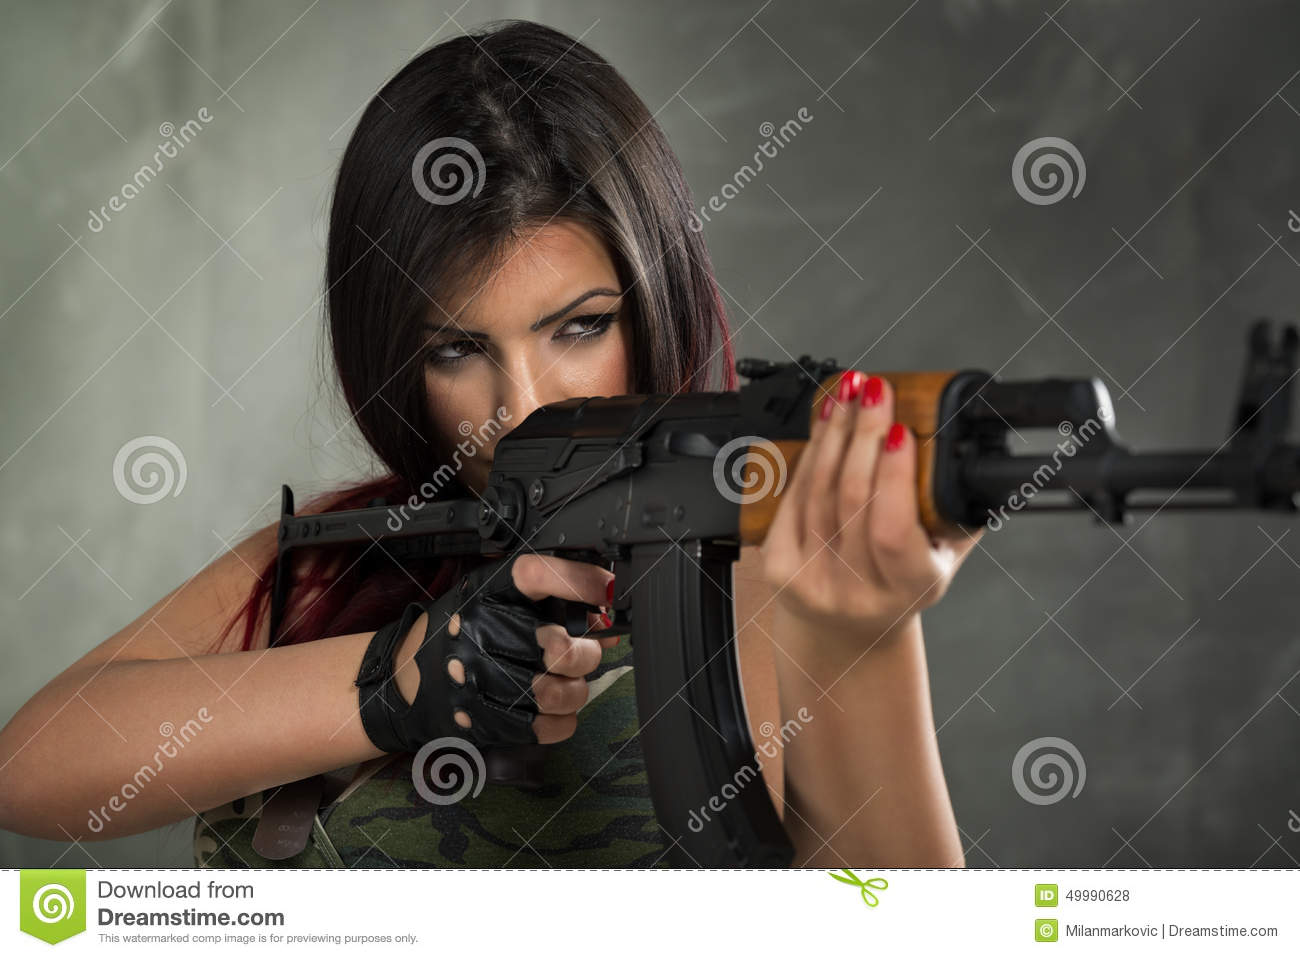 The military naked army girl holding a gun here against